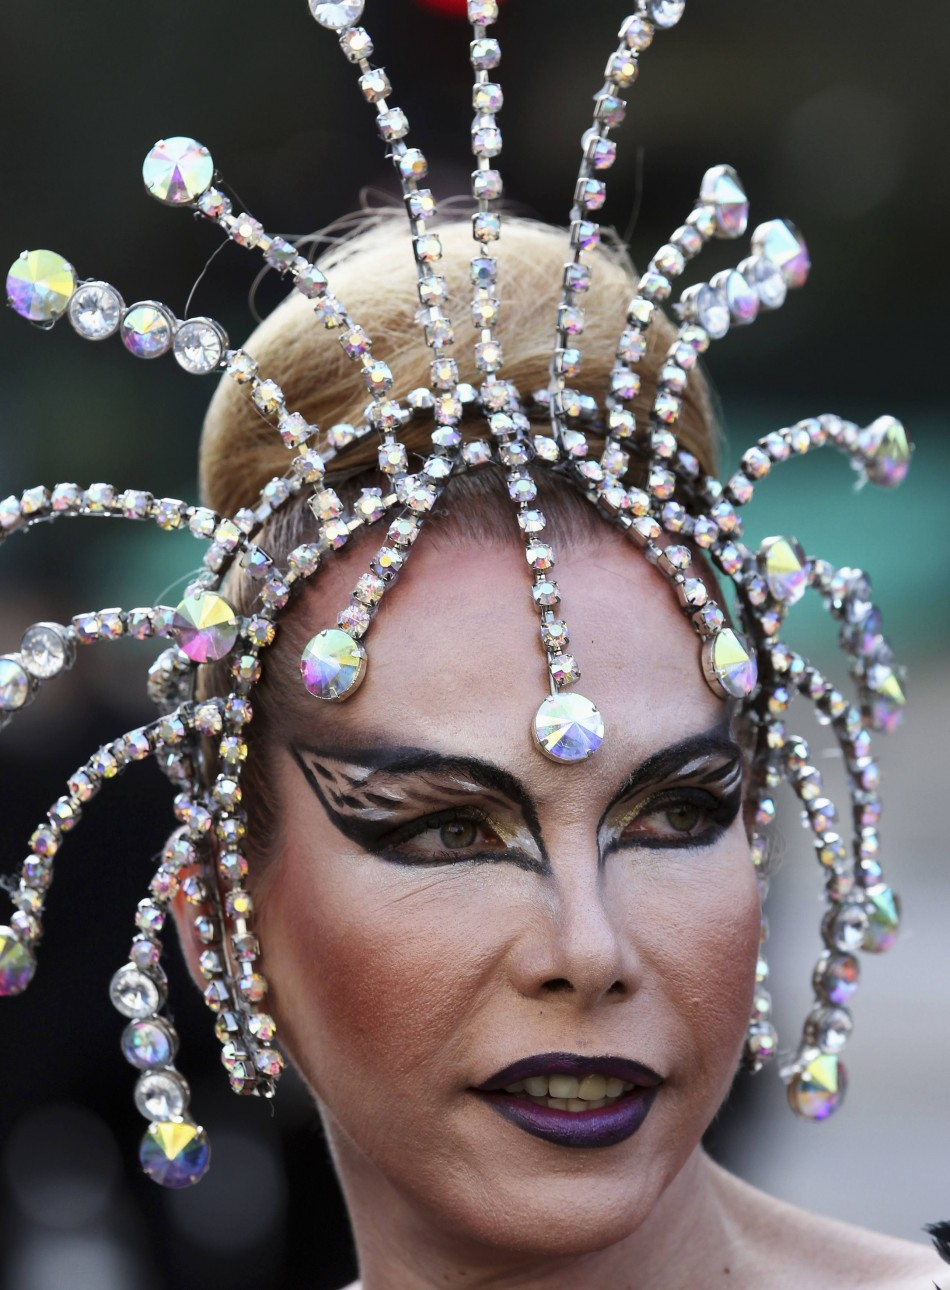 A participant parades during the 16th LGBT pride parade in Sao Paulo